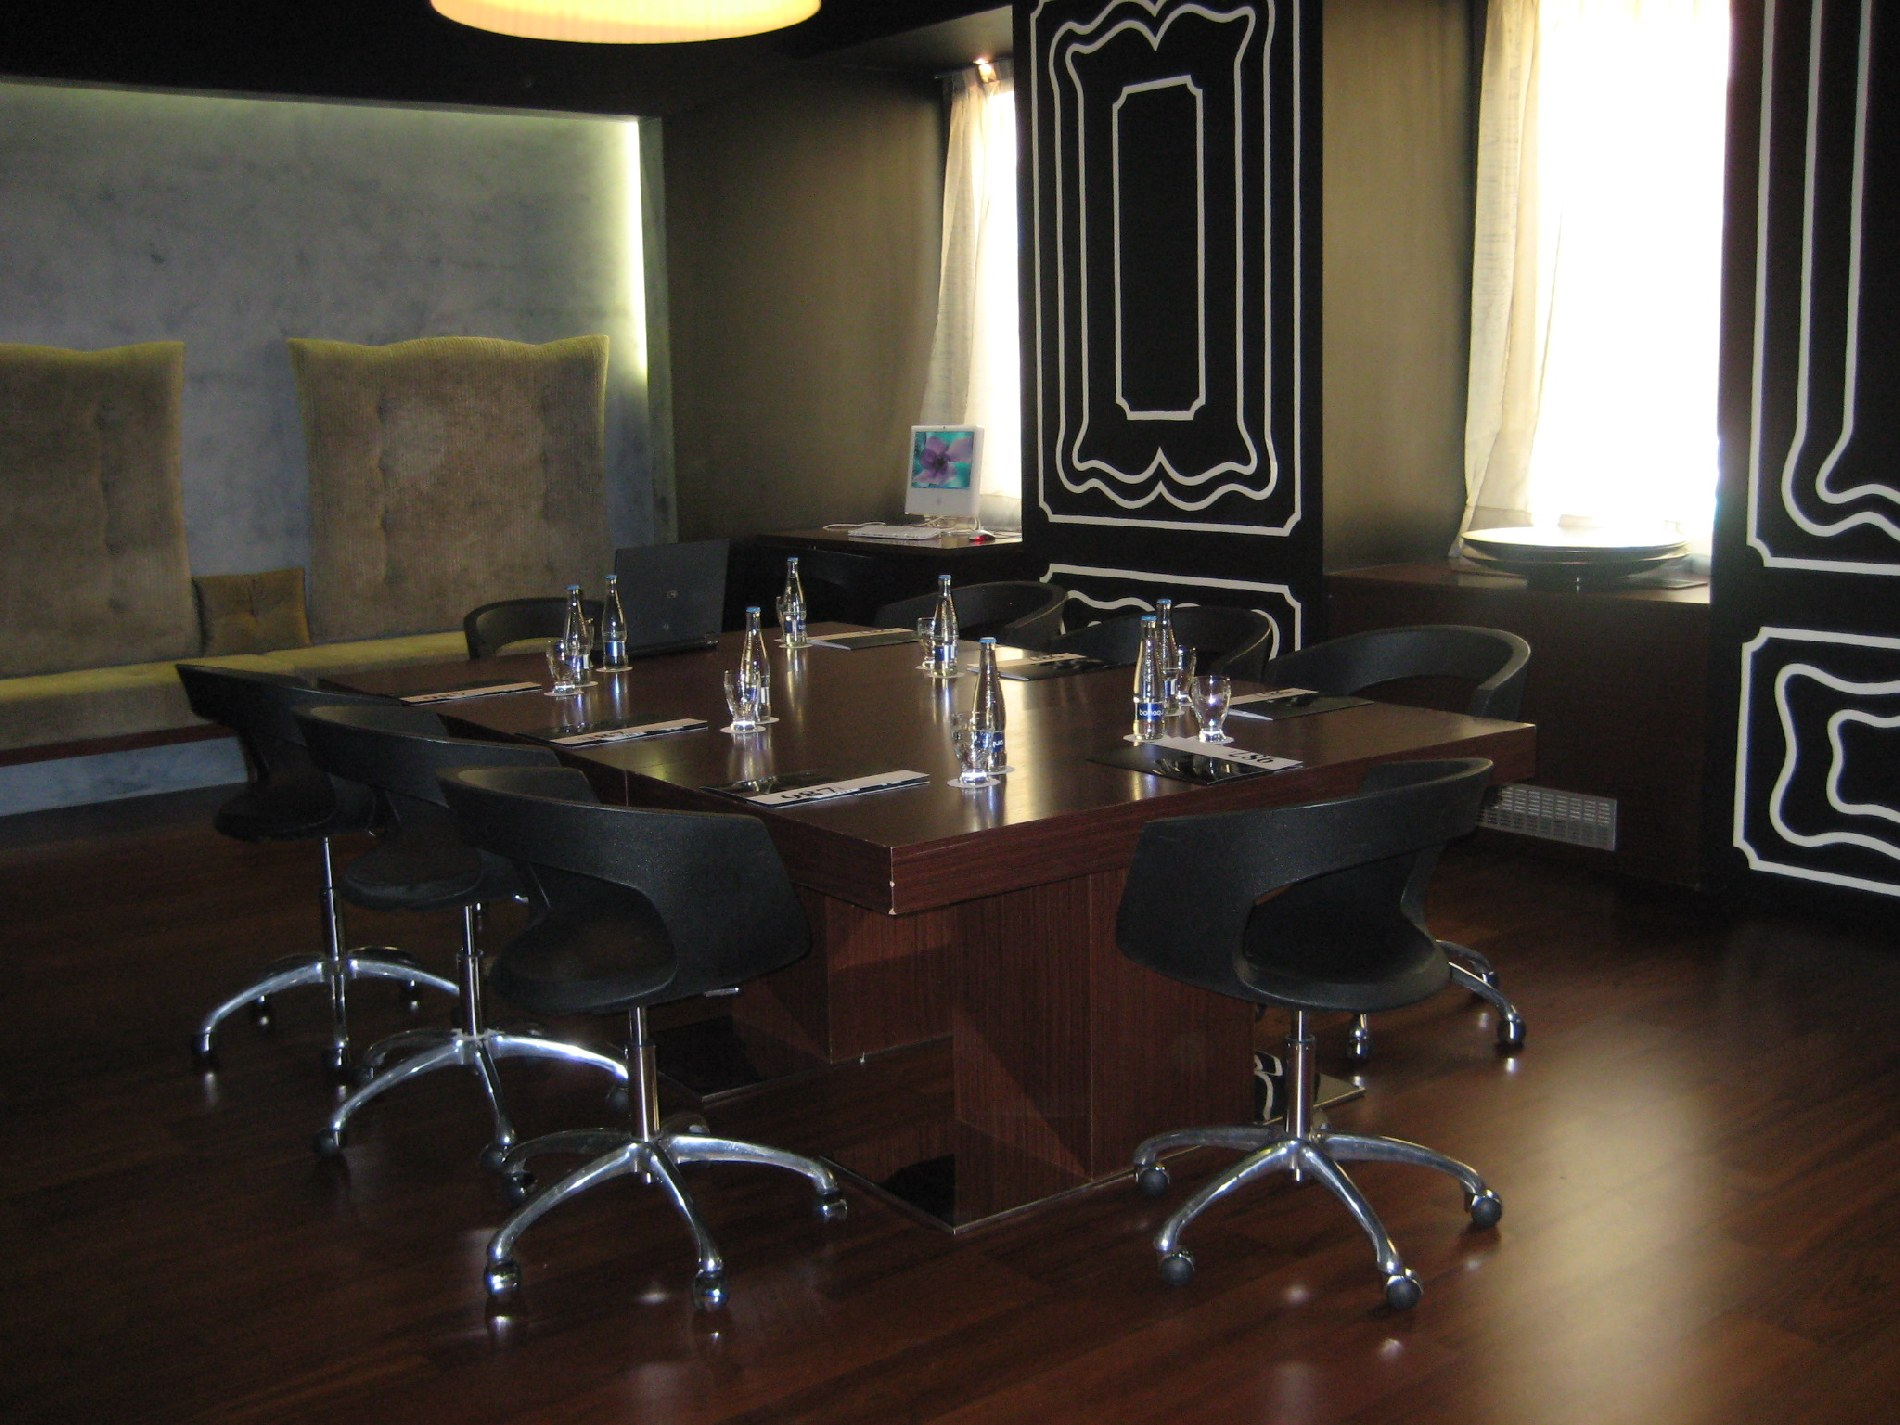 Meeting rooms 987 design prague hotel for your event in for Hotel design 987